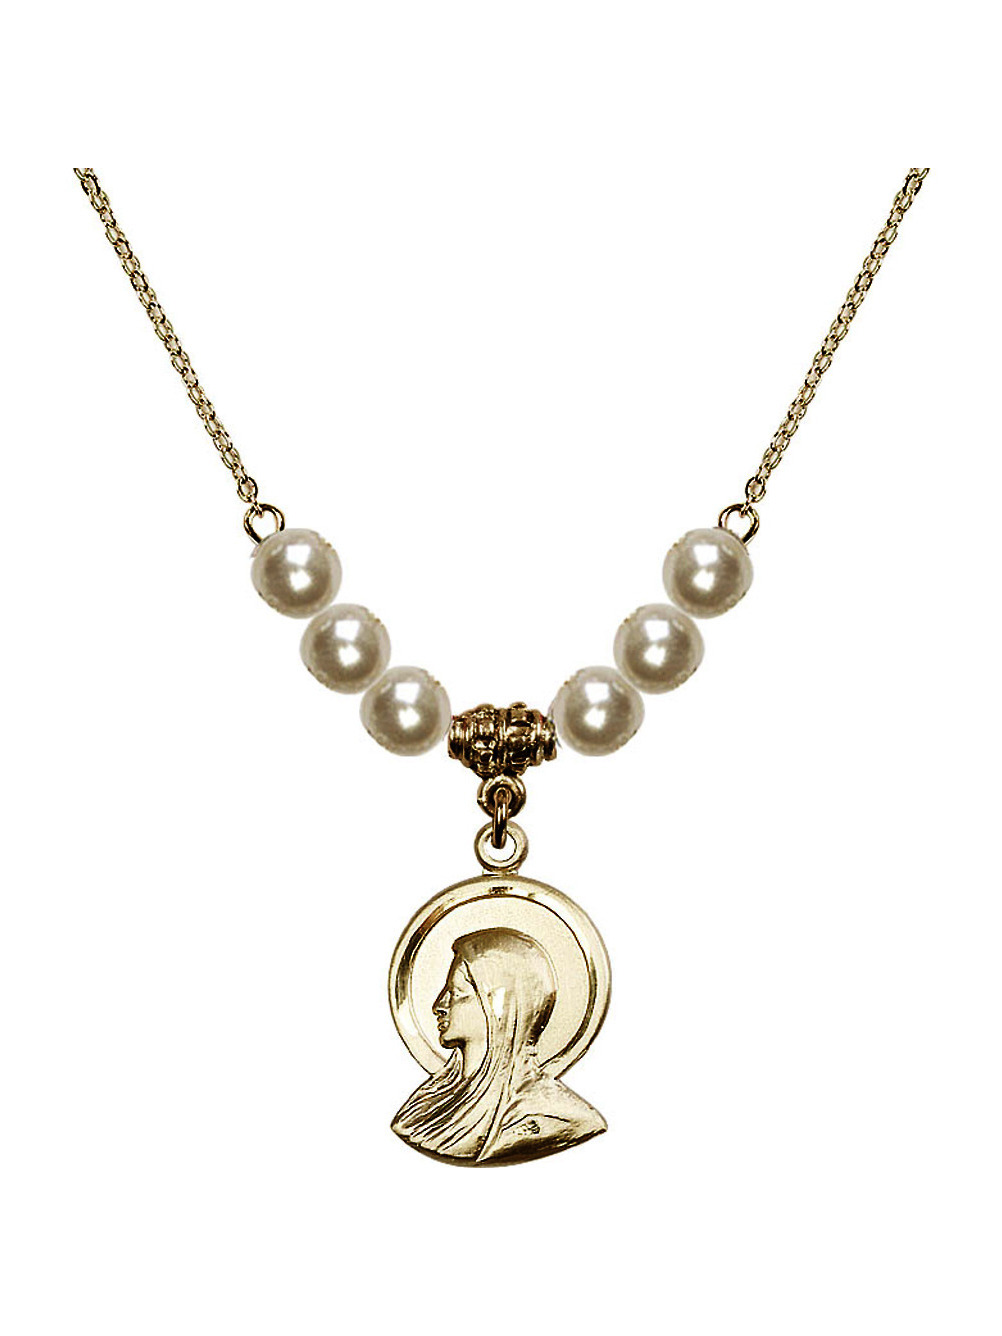 18-Inch Hamilton Gold Plated Necklace with 4mm Crystal Birthstone Beads and Gold Filled Holy Spirit Charm.